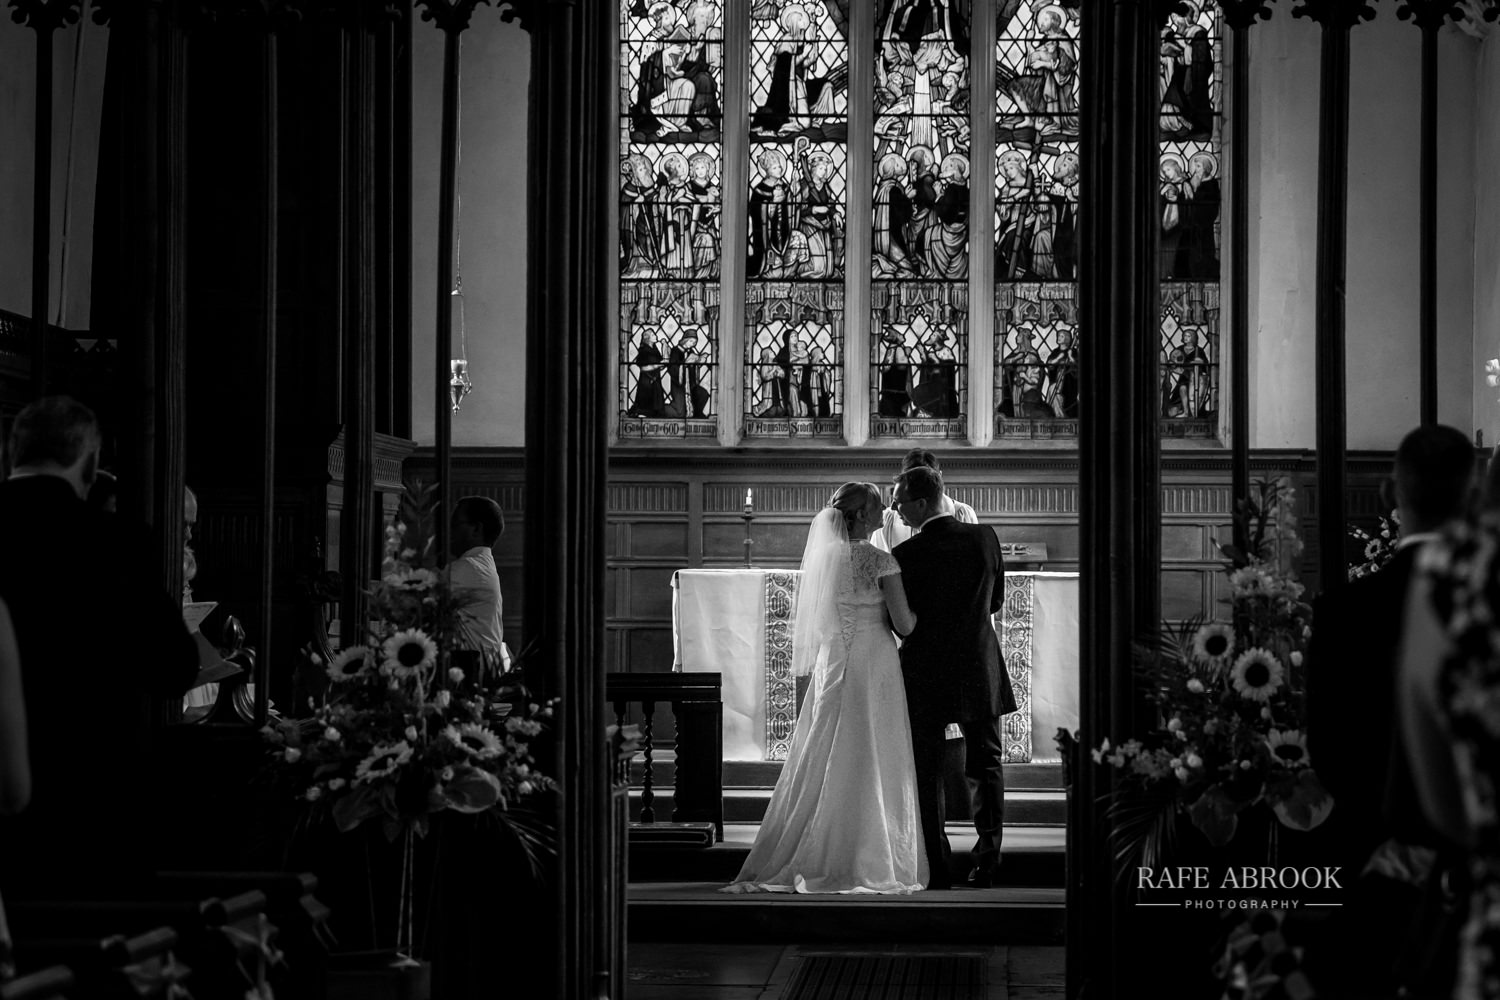 minstrel court wedding royston cambridge hertfordshire wedding photographer-1173.jpg